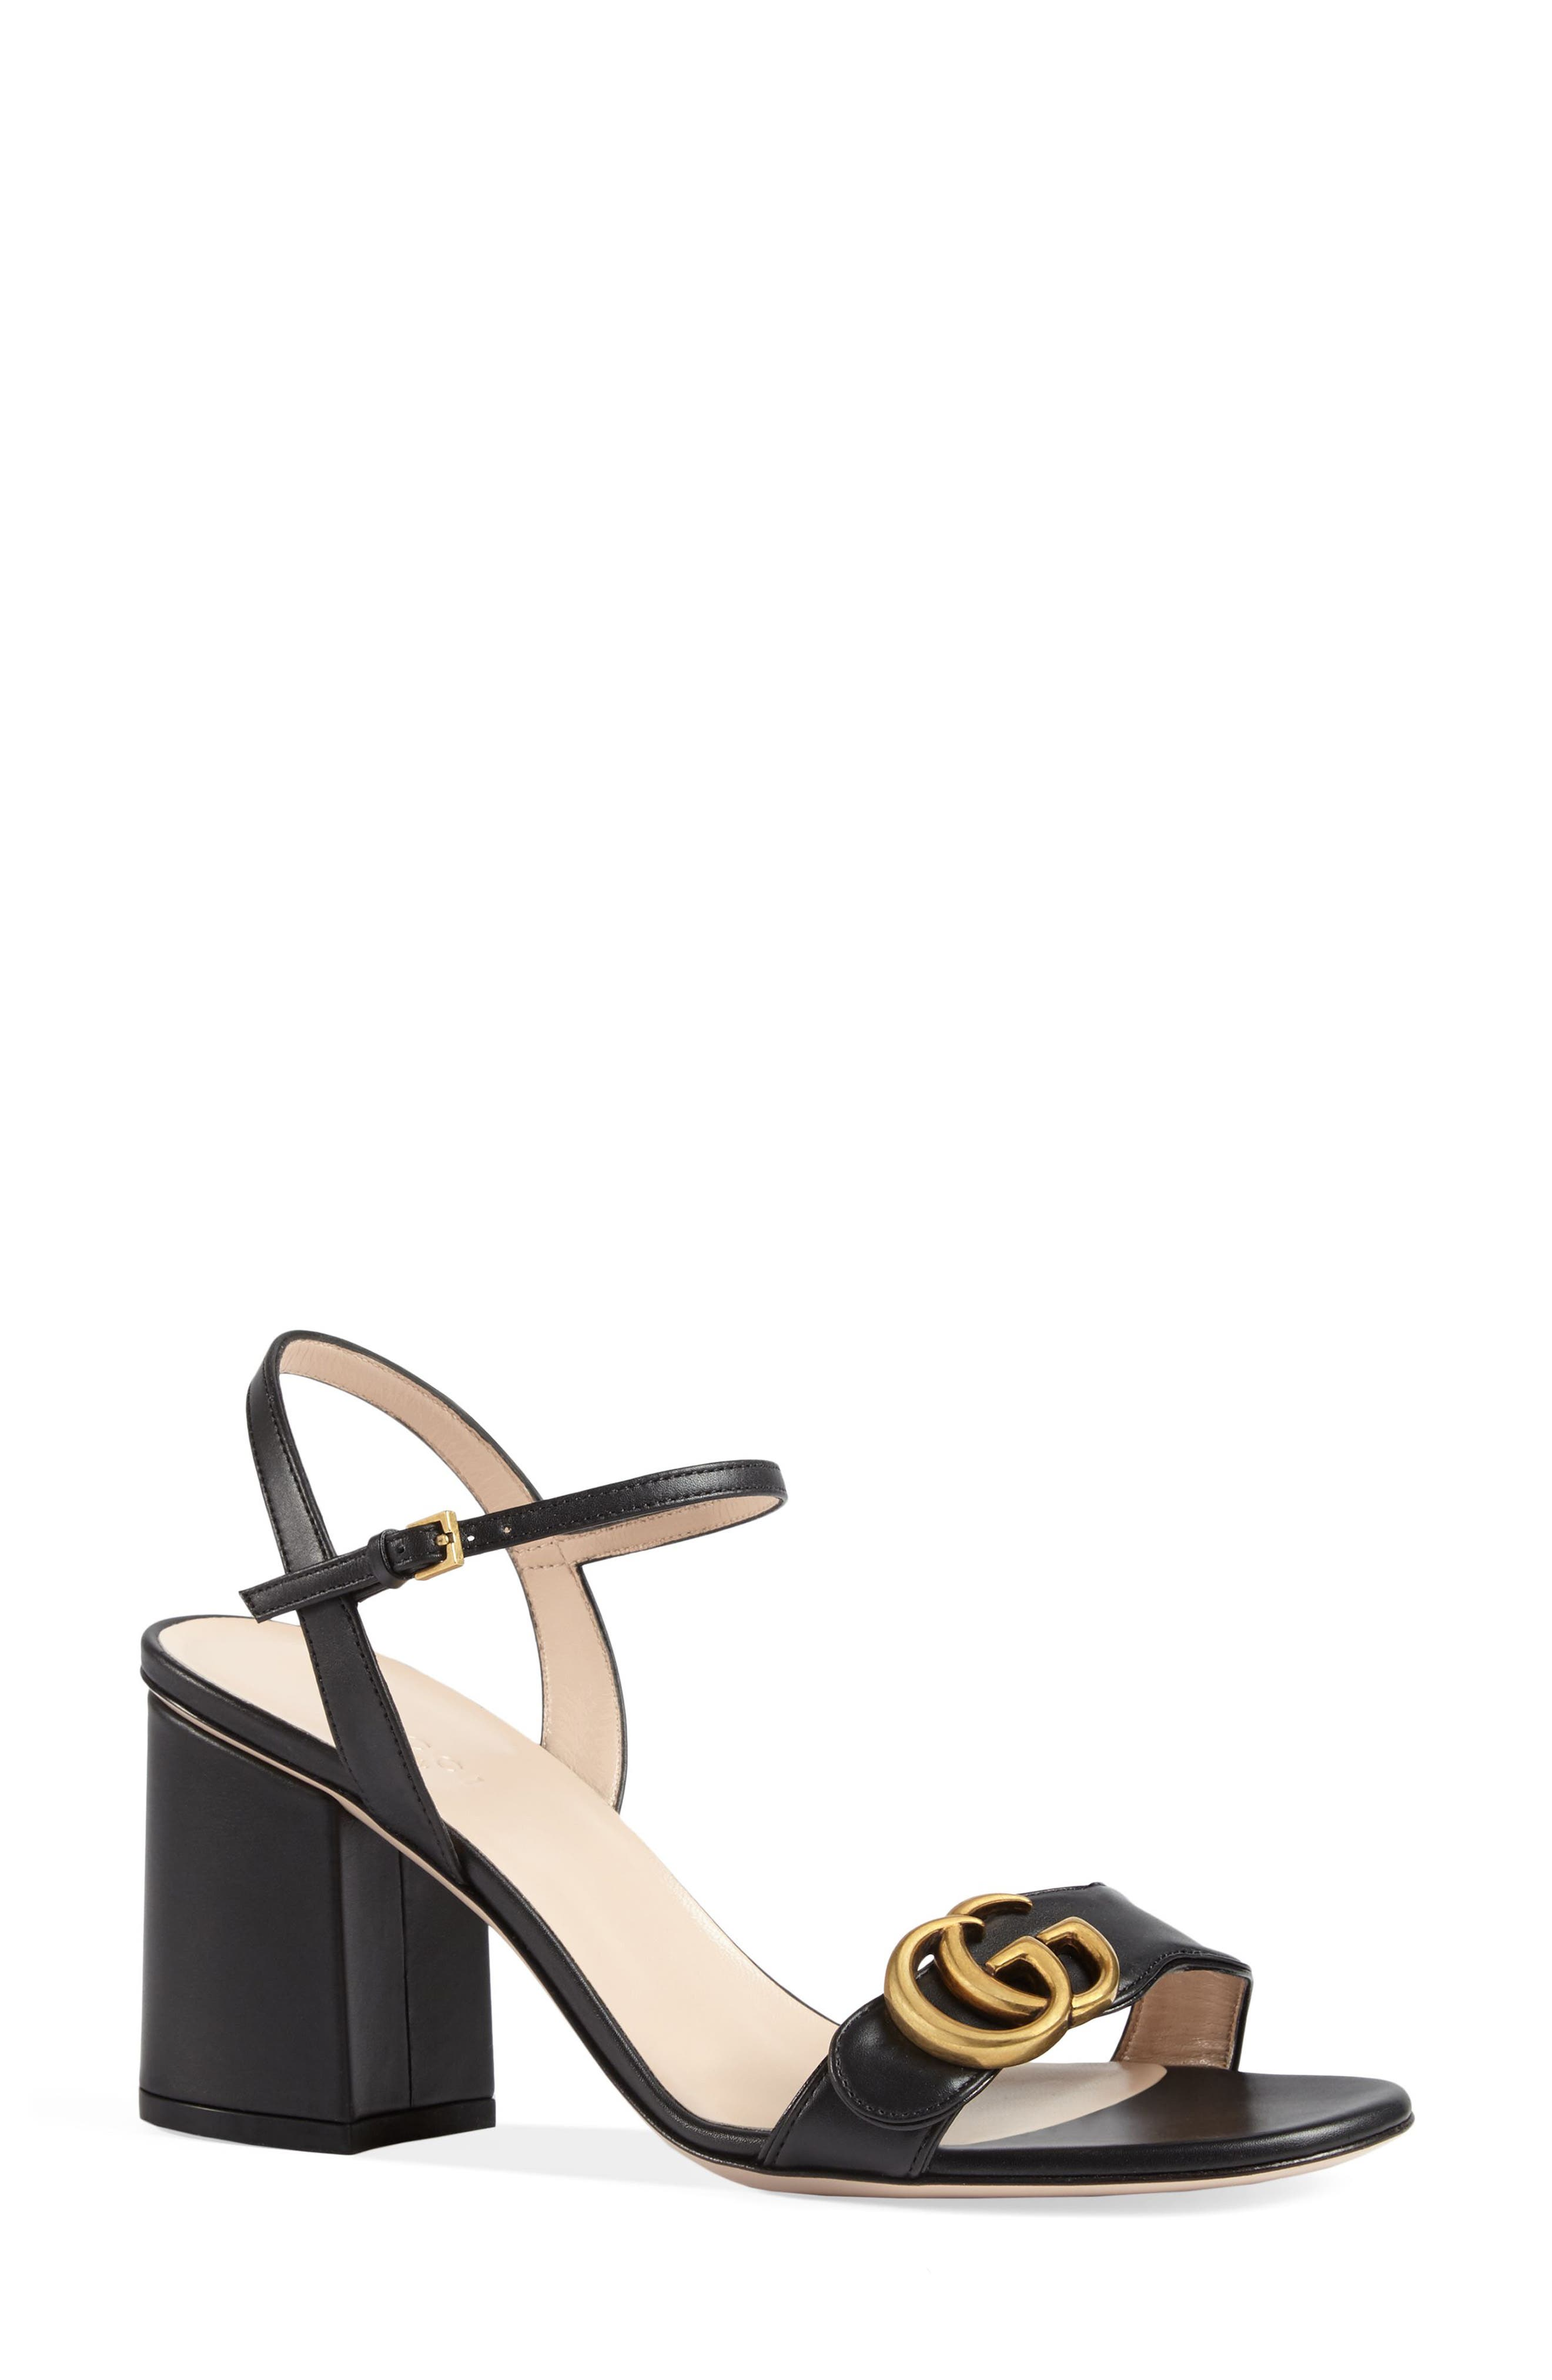 GUCCI GG Marmont Sandal, Main, color, BLACK LEATHER